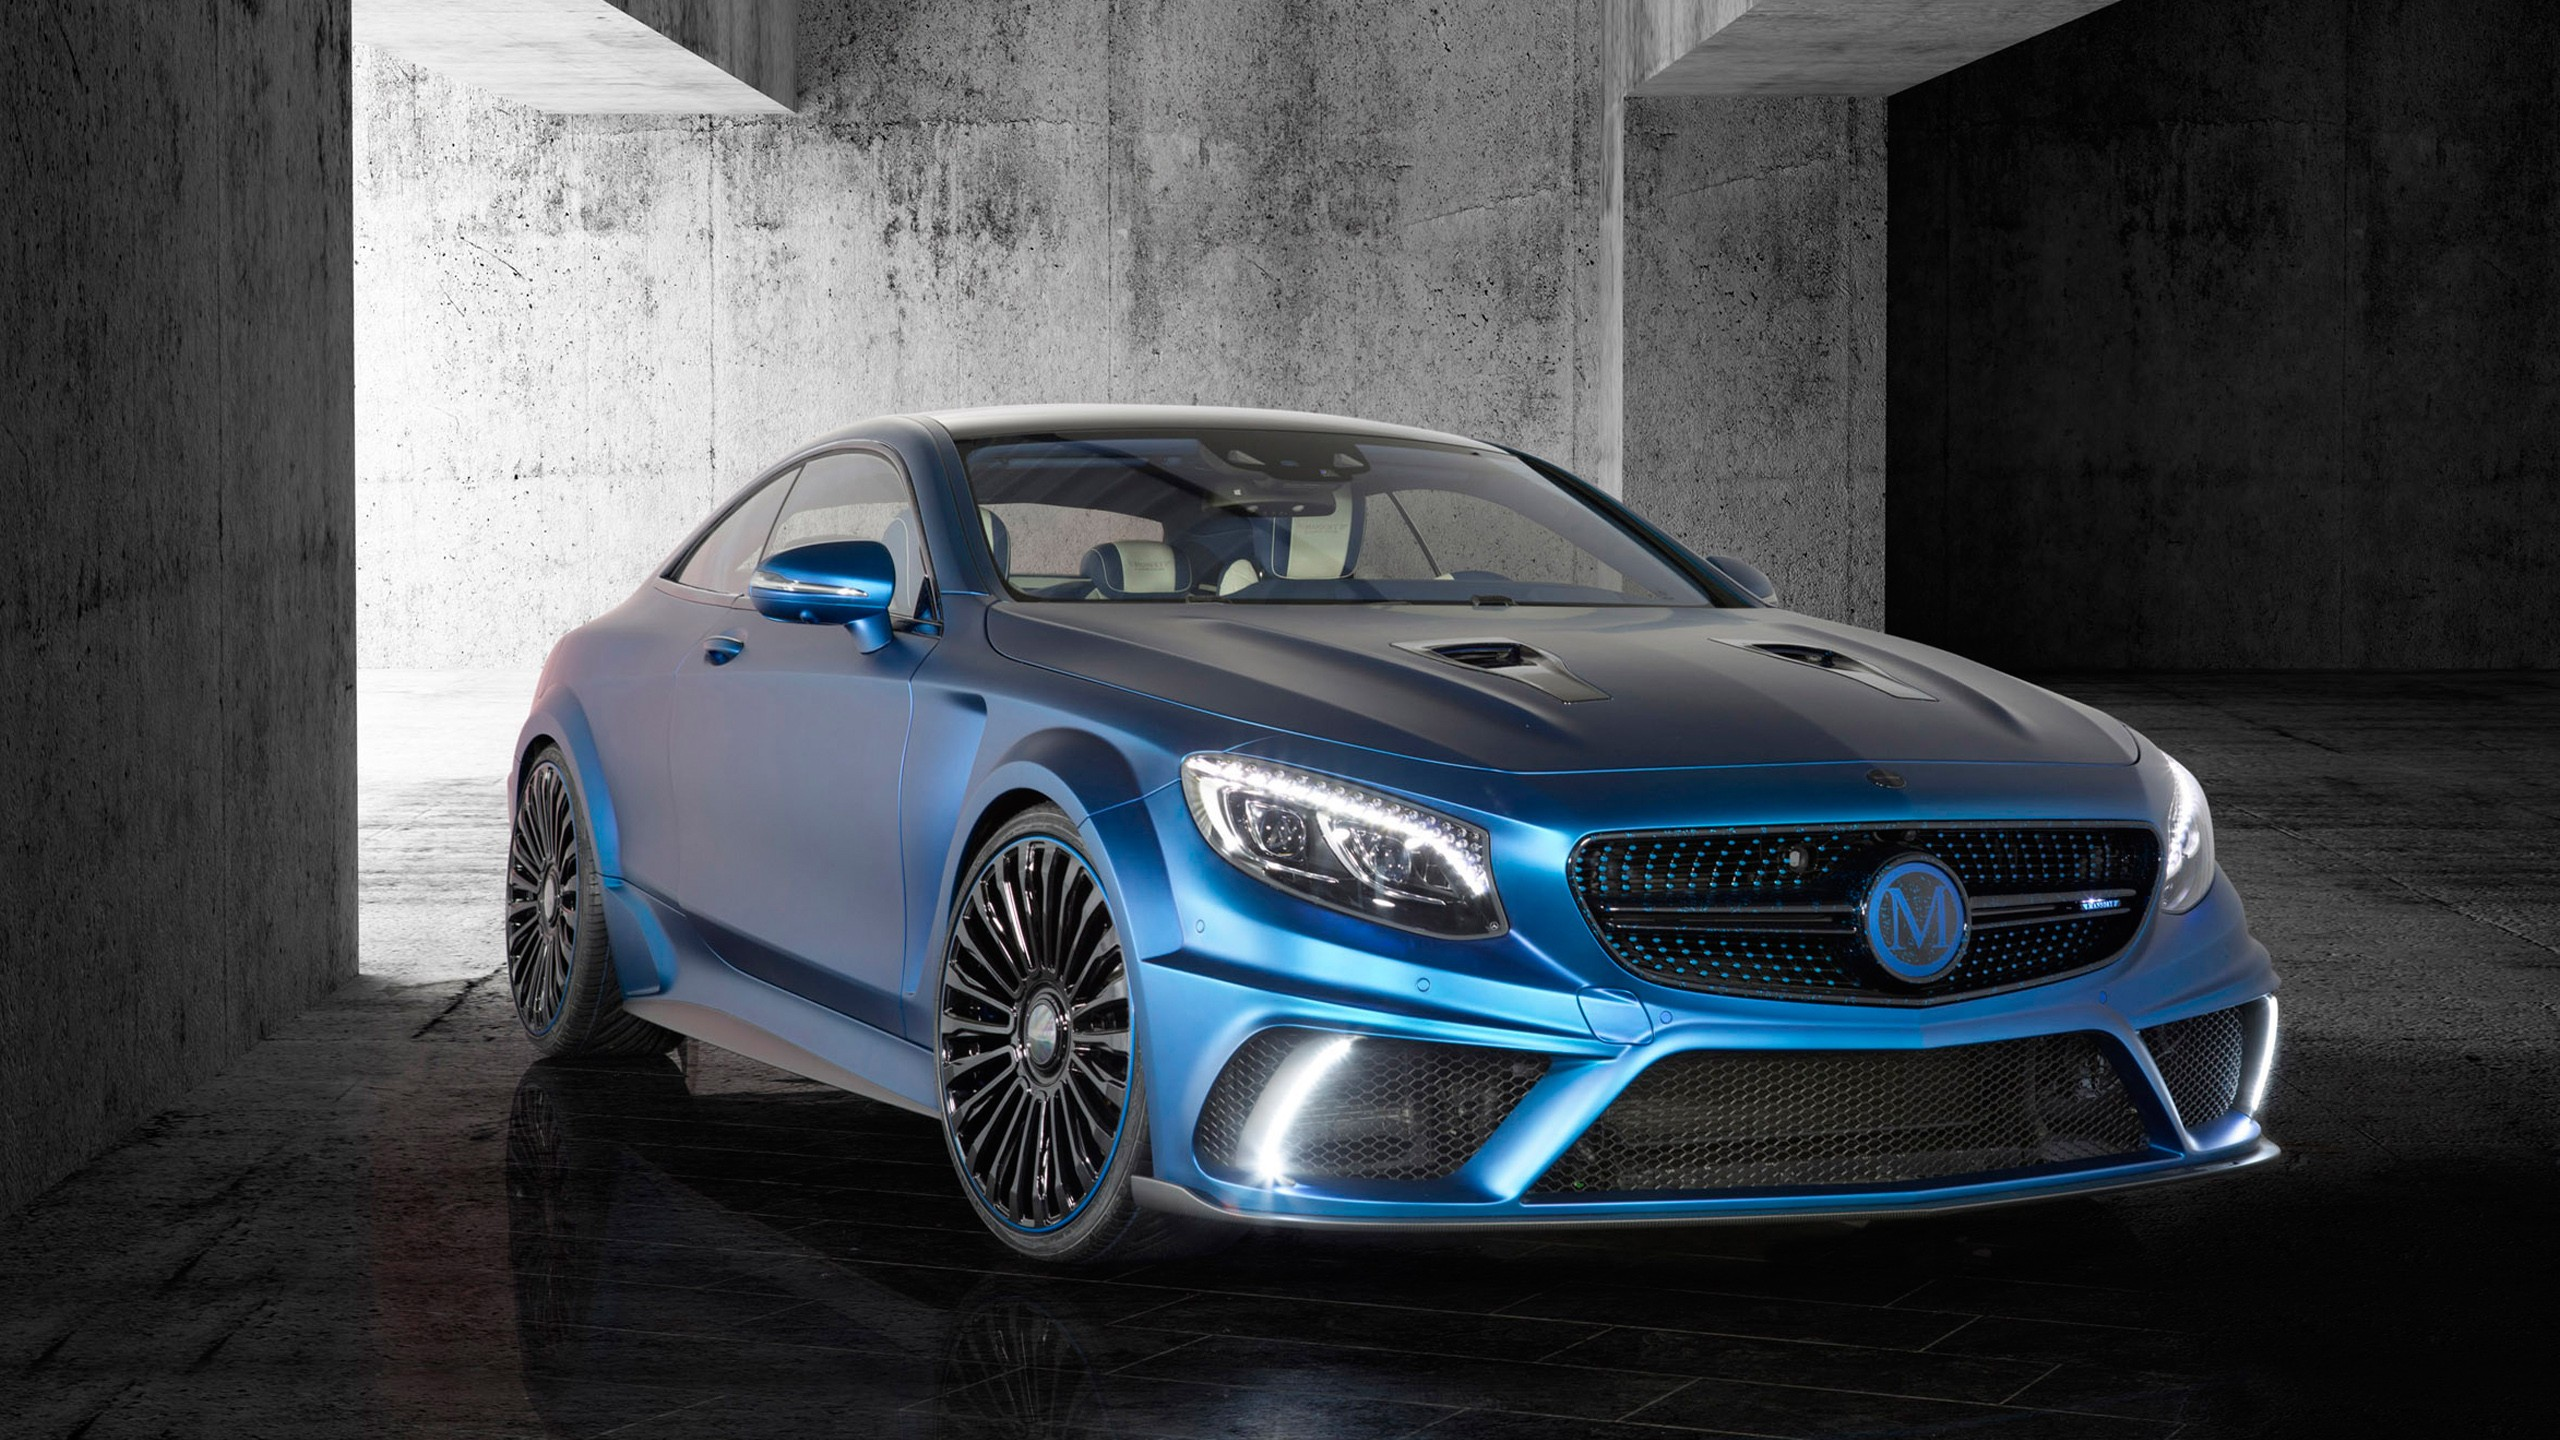 2015 Mansory Mercedes Benz S63 AMG Coupe Diamond Edition ...